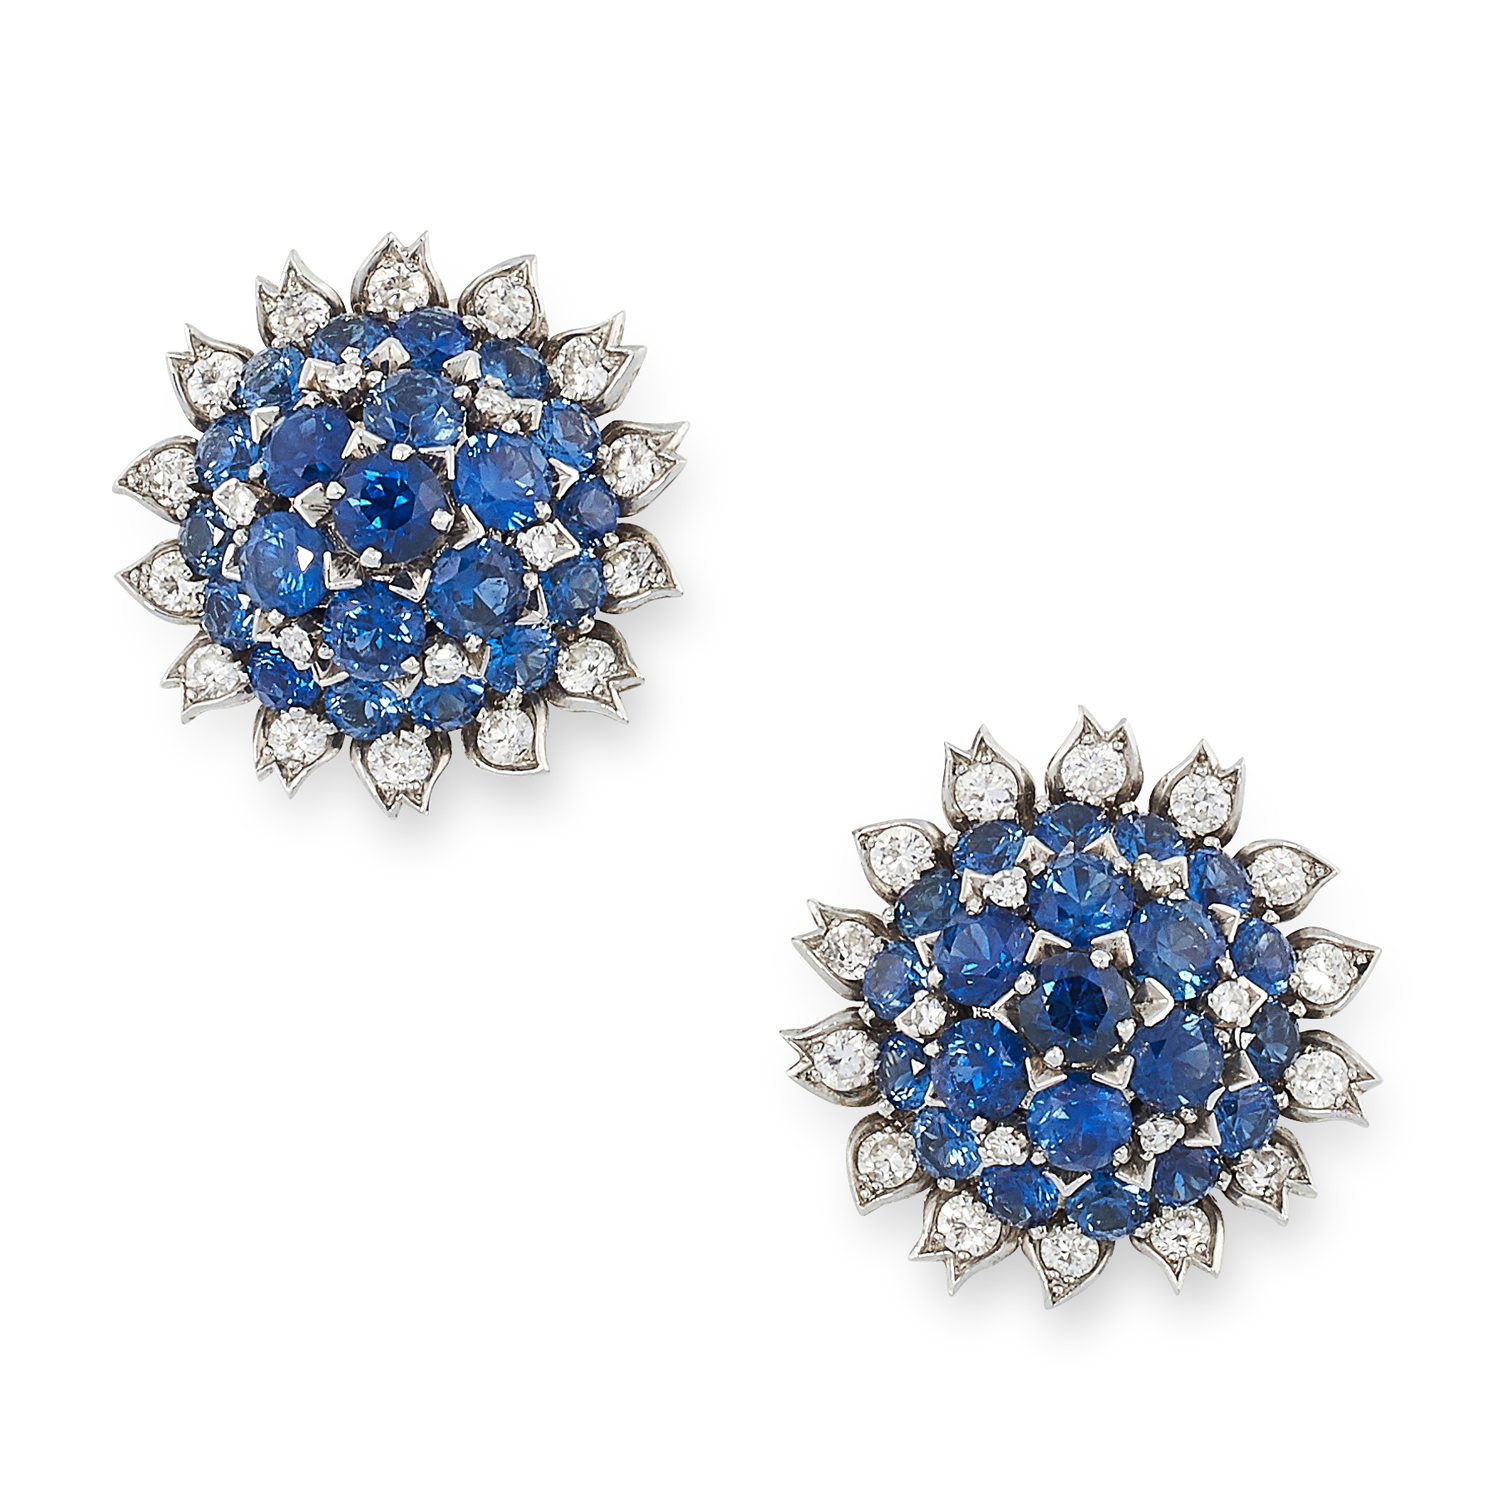 A PAIR OF VINTAGE SAPPHIRE AND DIAMOND EARRINGS, CARTIER CIRCA 1960 in 18ct white gold, each set